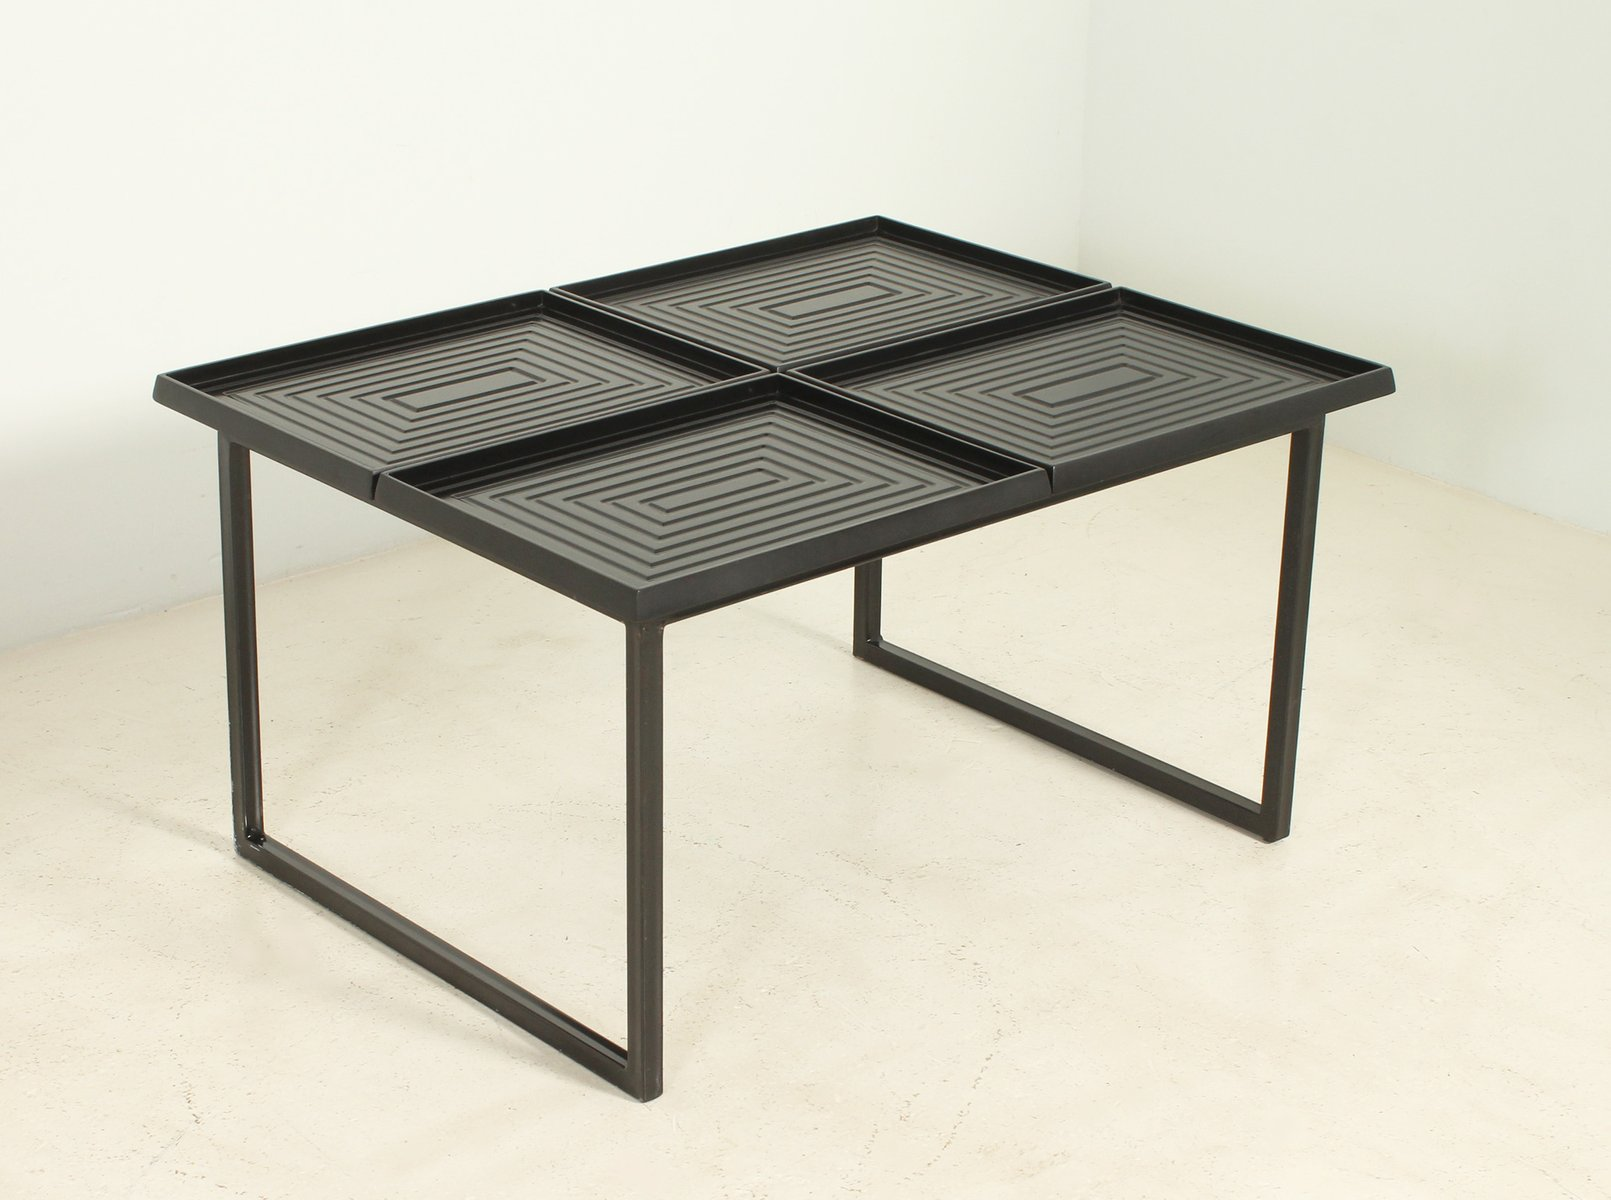 Geometric coffee table with removable trays 1980s for sale at pamono geometric coffee table with removable trays 1980s geotapseo Image collections